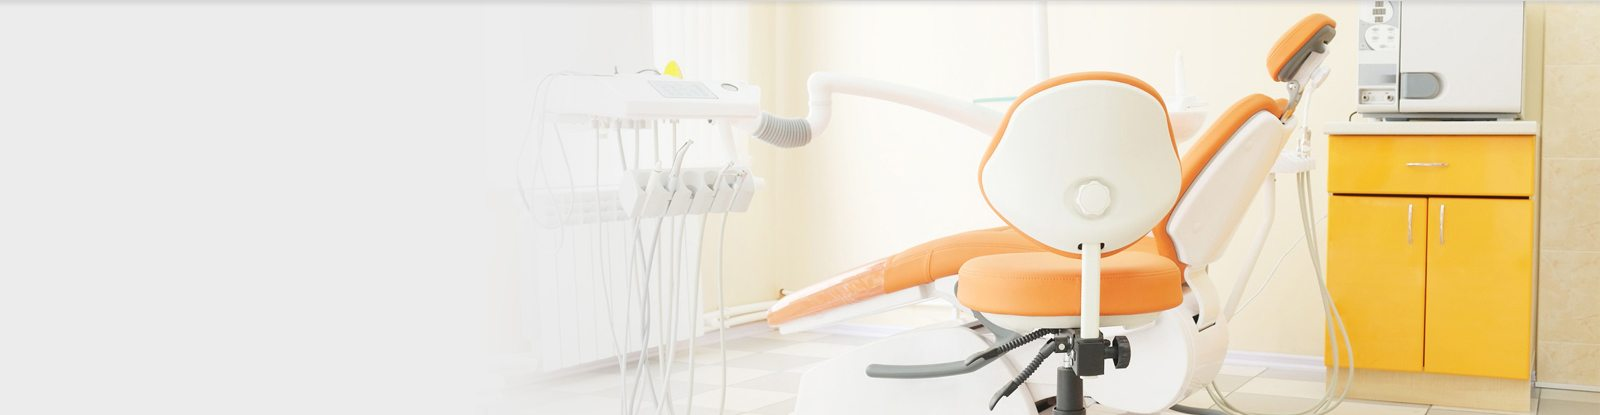 Modern dental units, chairs, equipment, tools and microscope